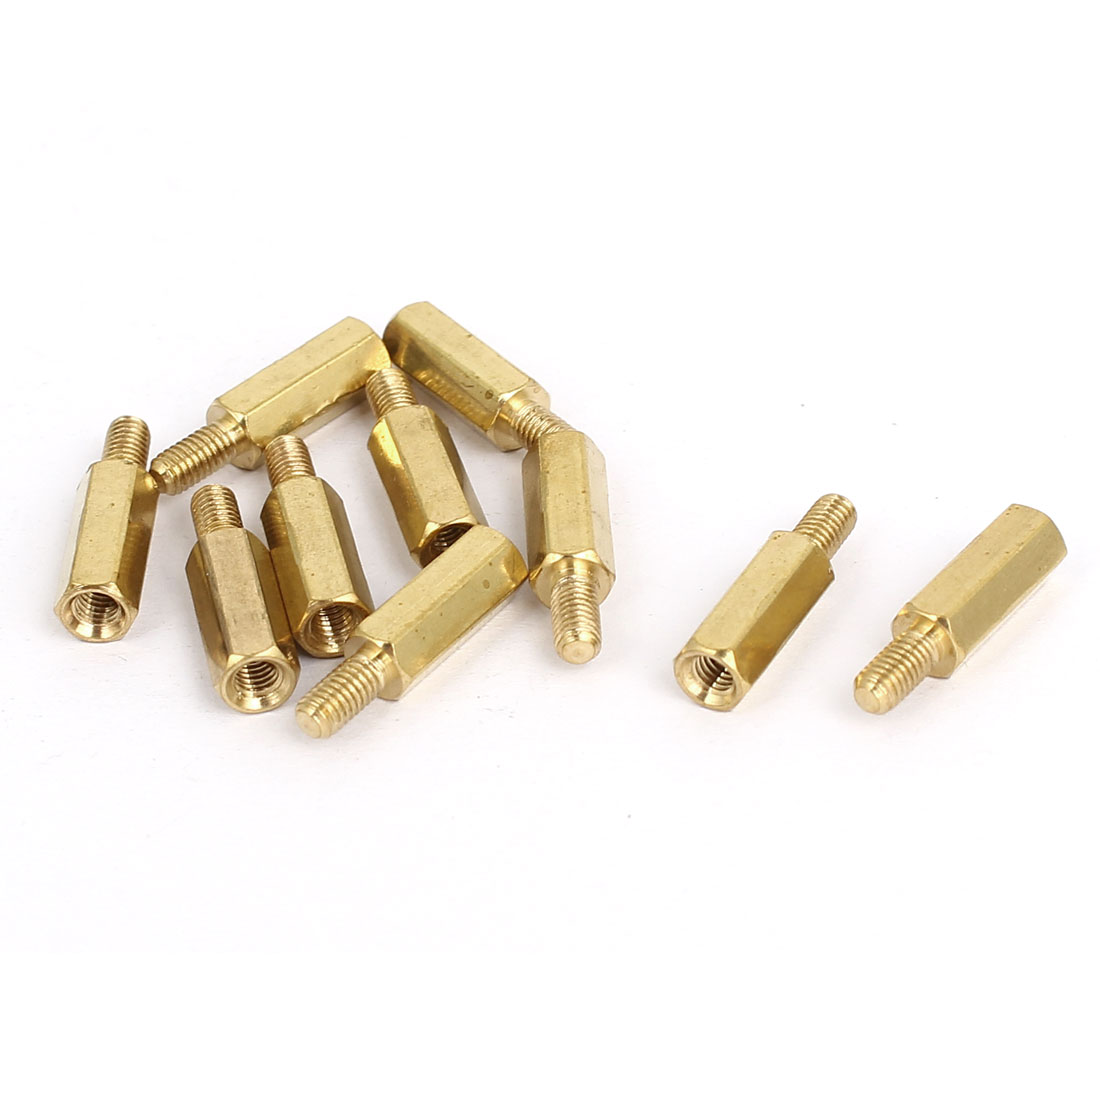 M3x12mm+6mm Brass Threaded Hex Hexagonal Male/Female Standoff Spacer Pillar 10pcs